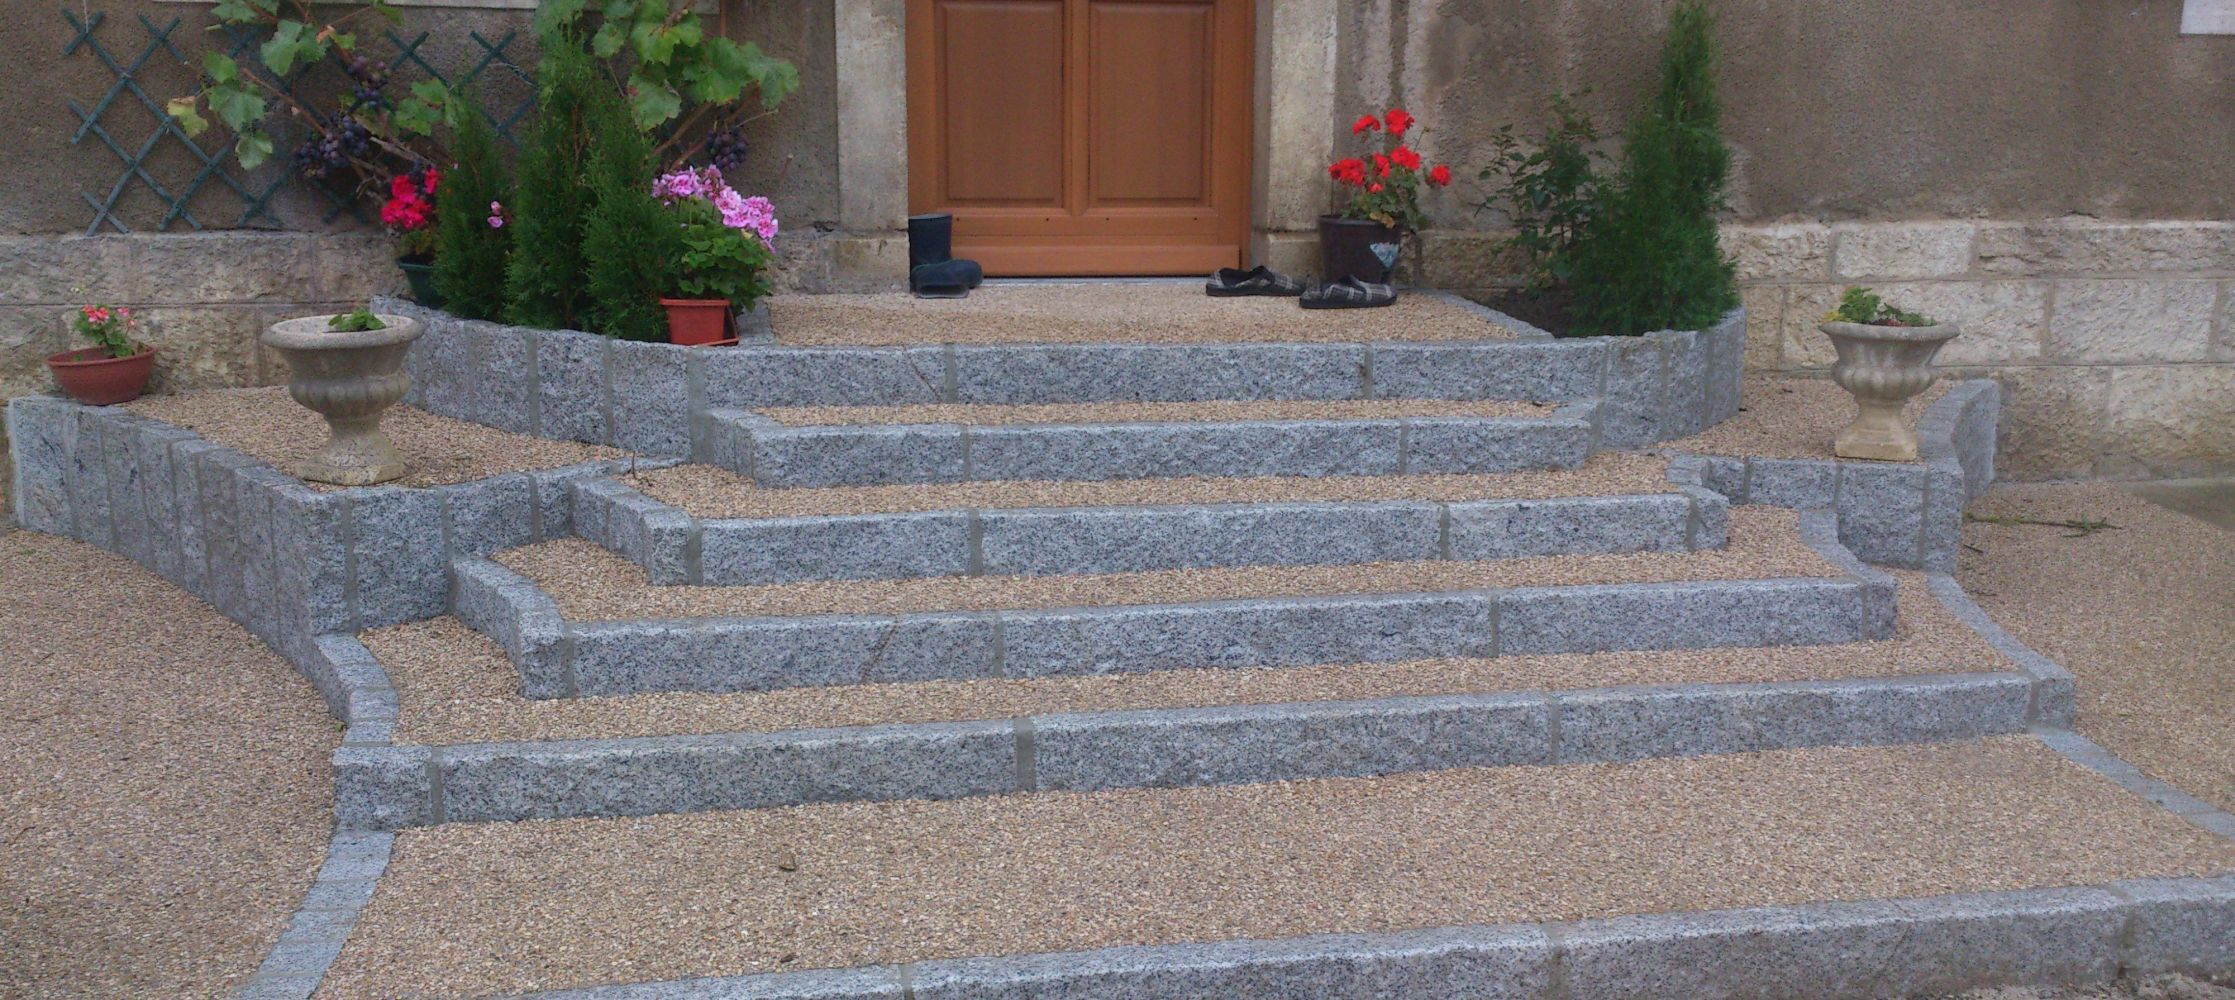 Escalier ext rieur traditionnel cuinet for Marche d escalier exterieur